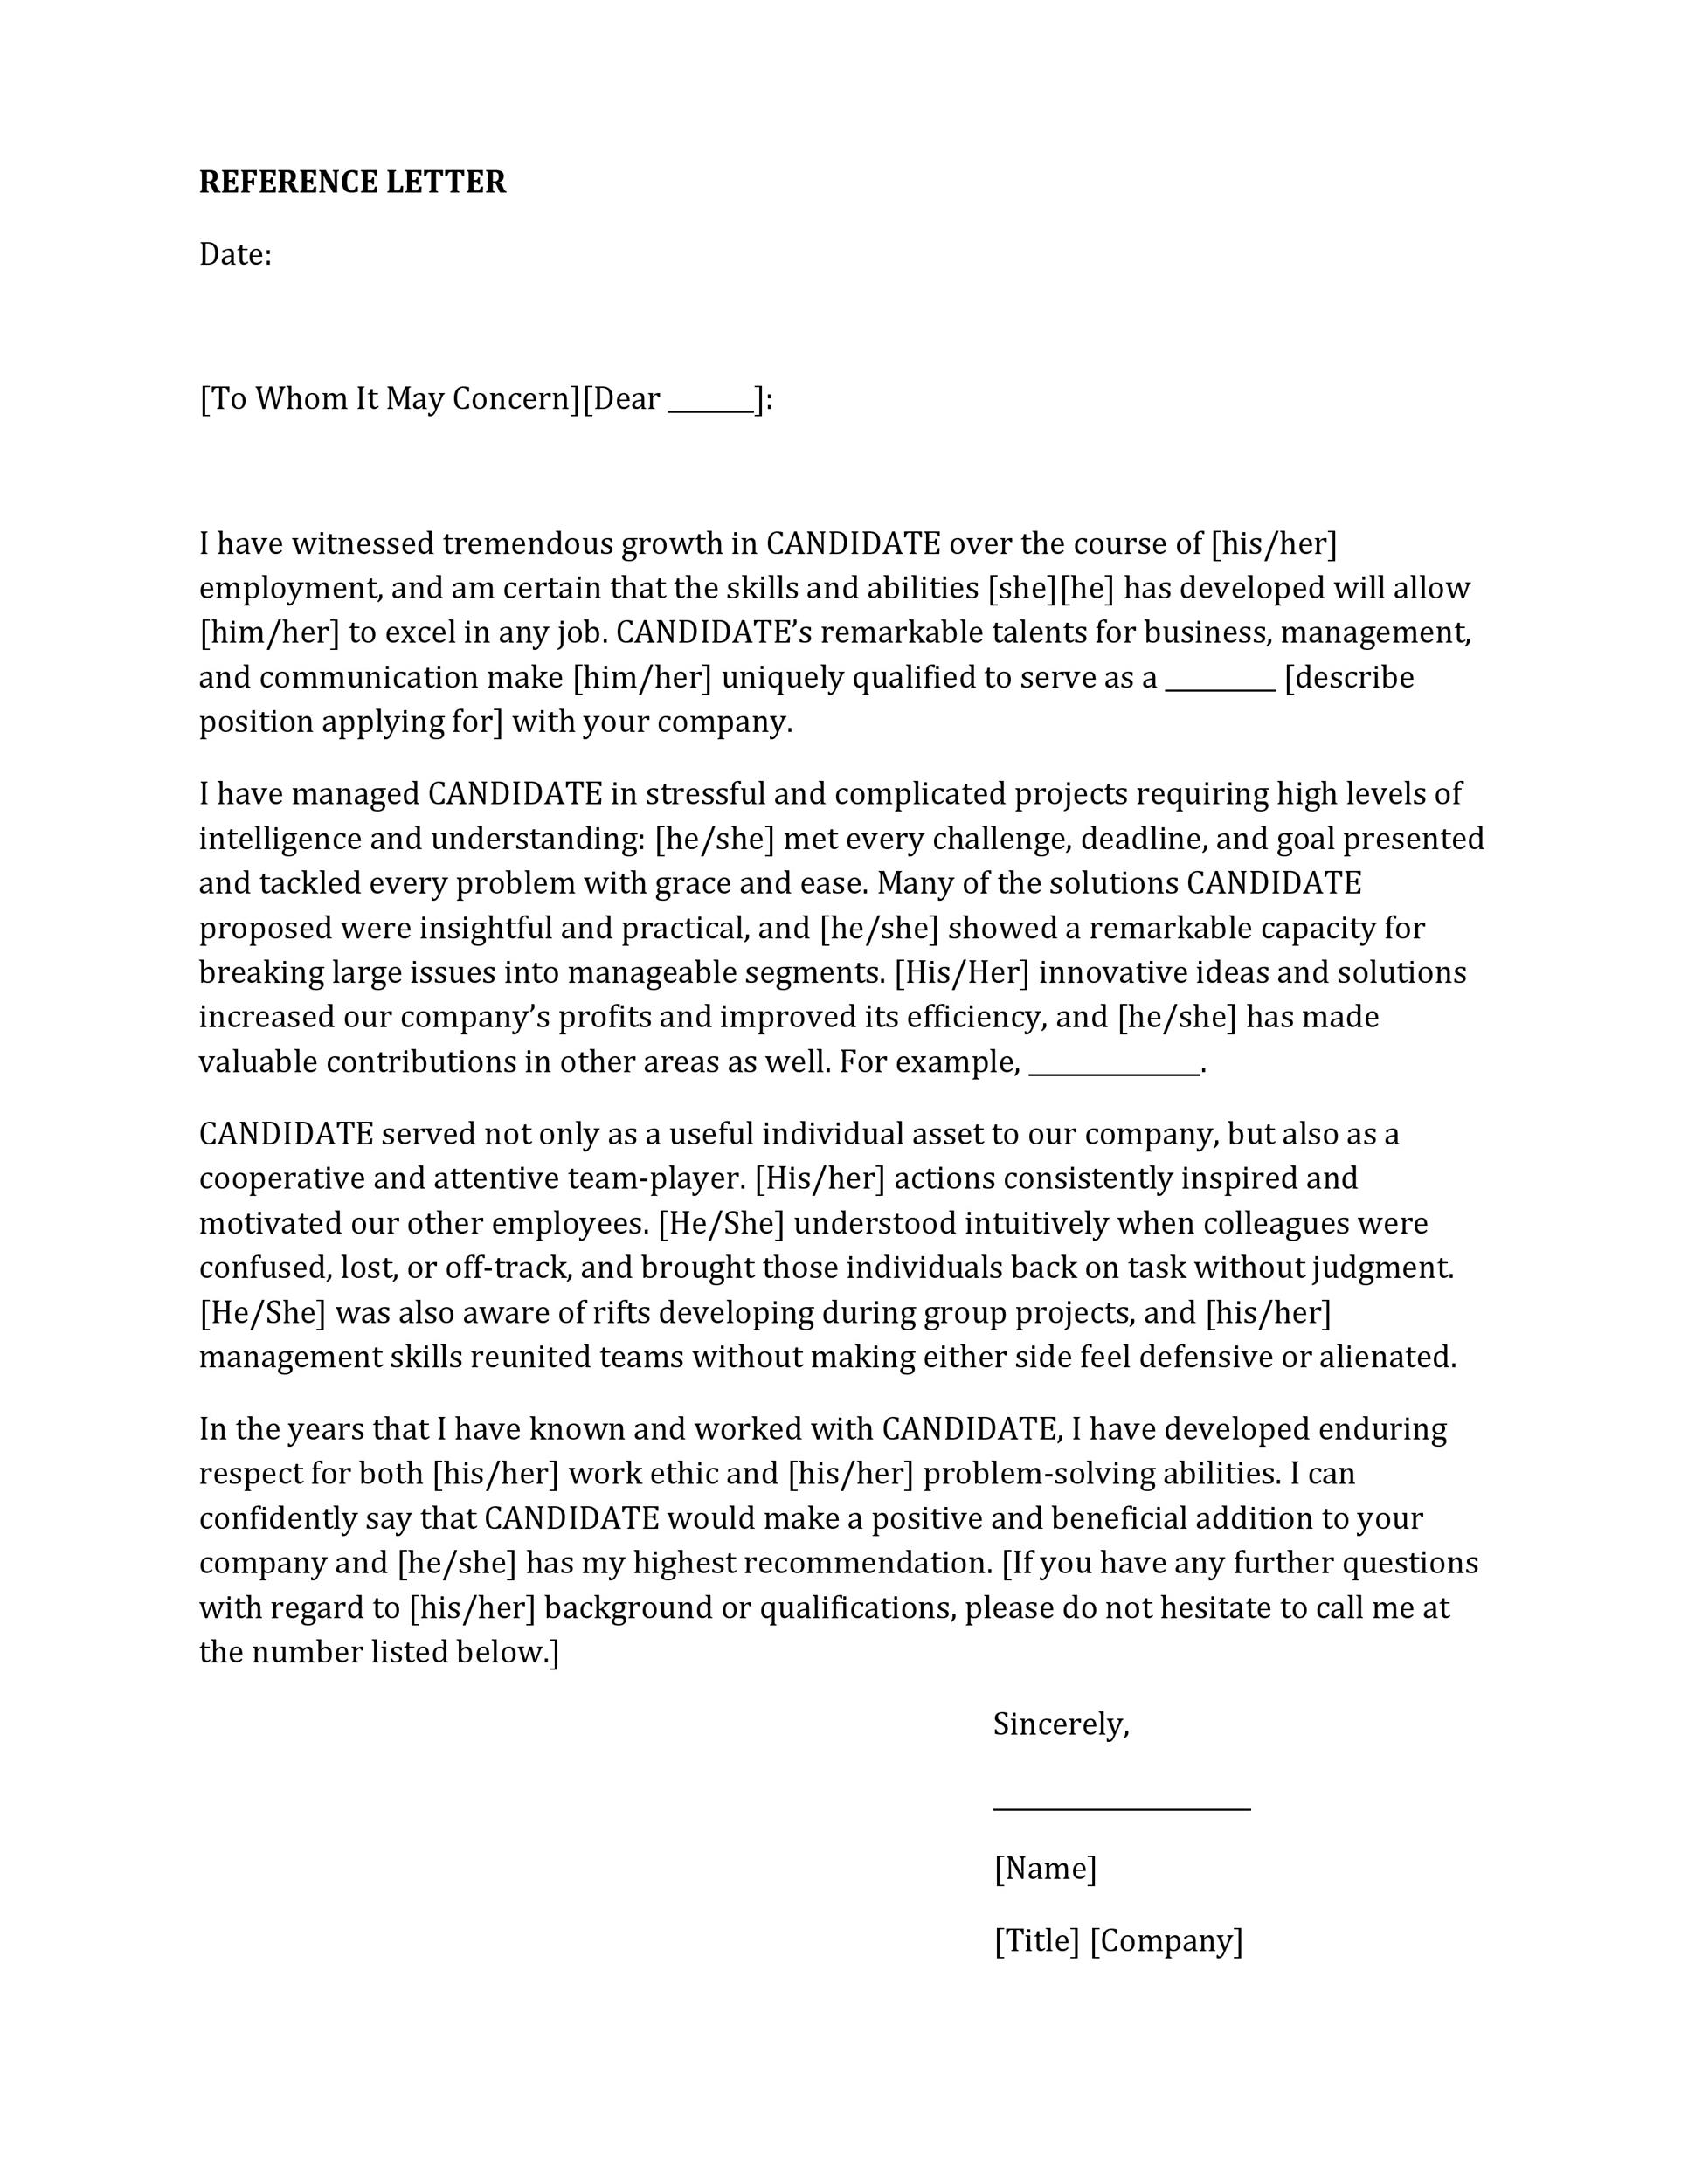 Sample Reference Letter. Recommendation Letter For Employment ...